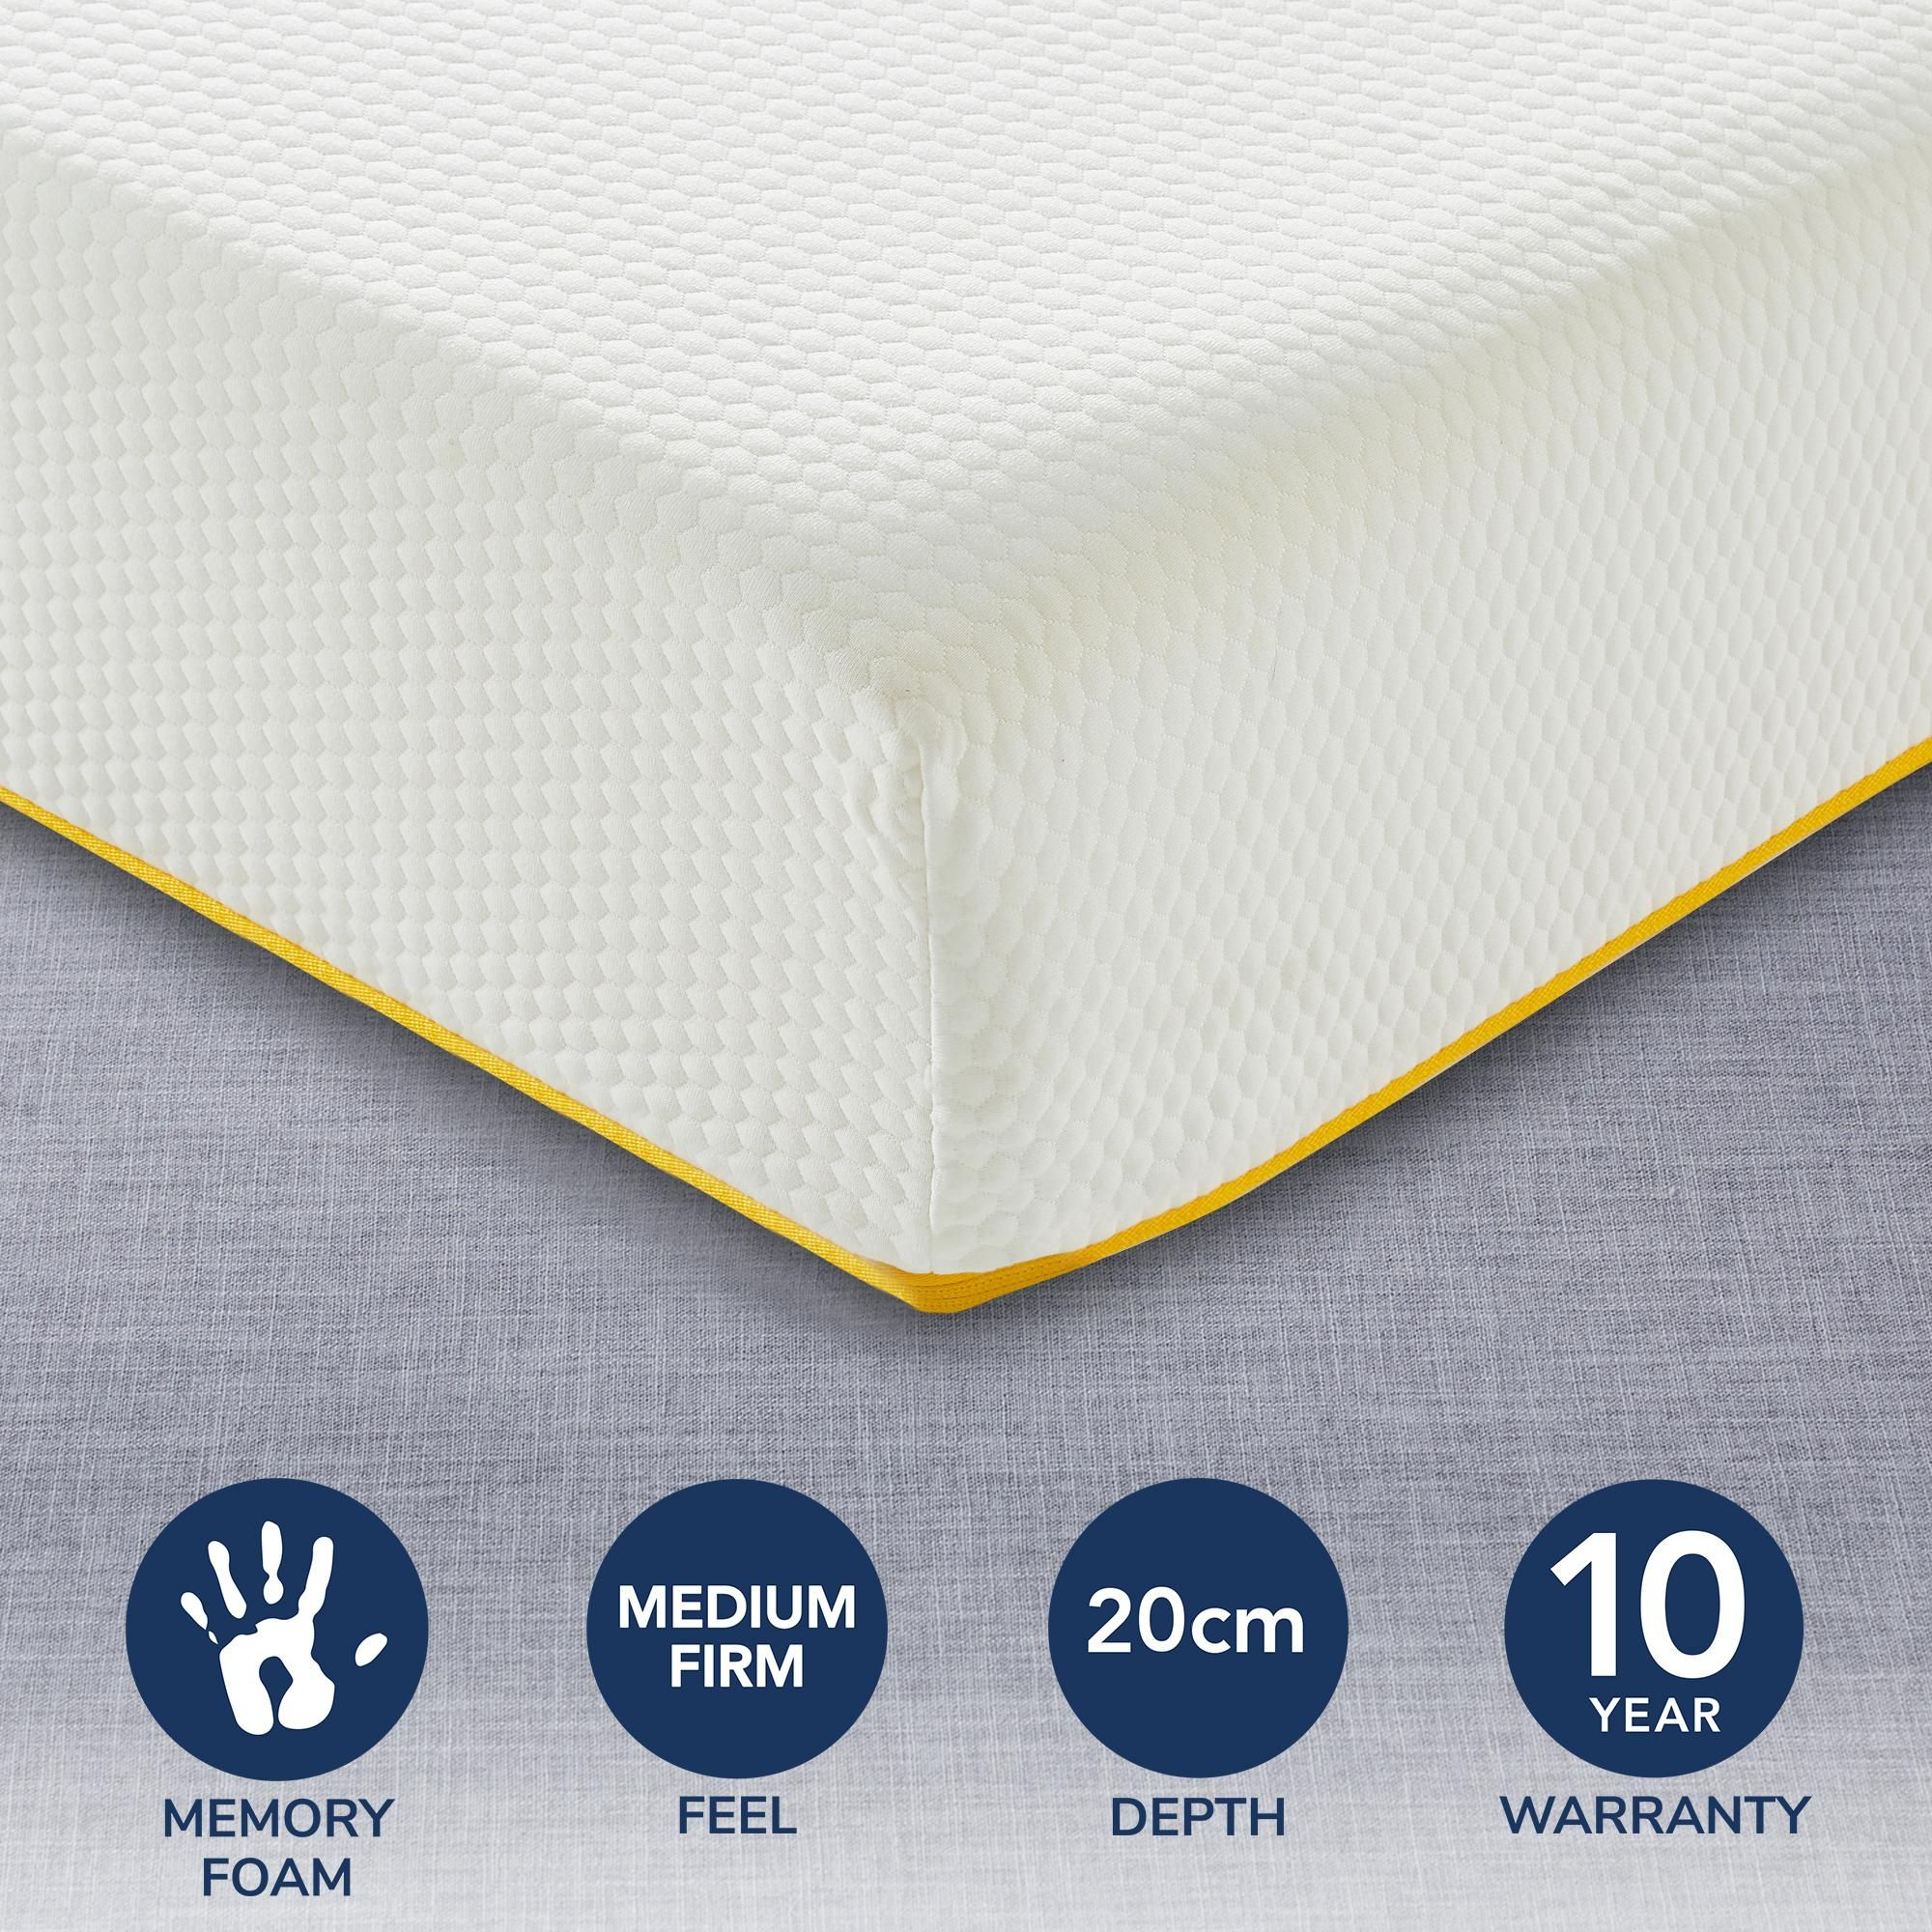 Eve Light Memory Foam Mattress In 2020 Foam Mattress Memory